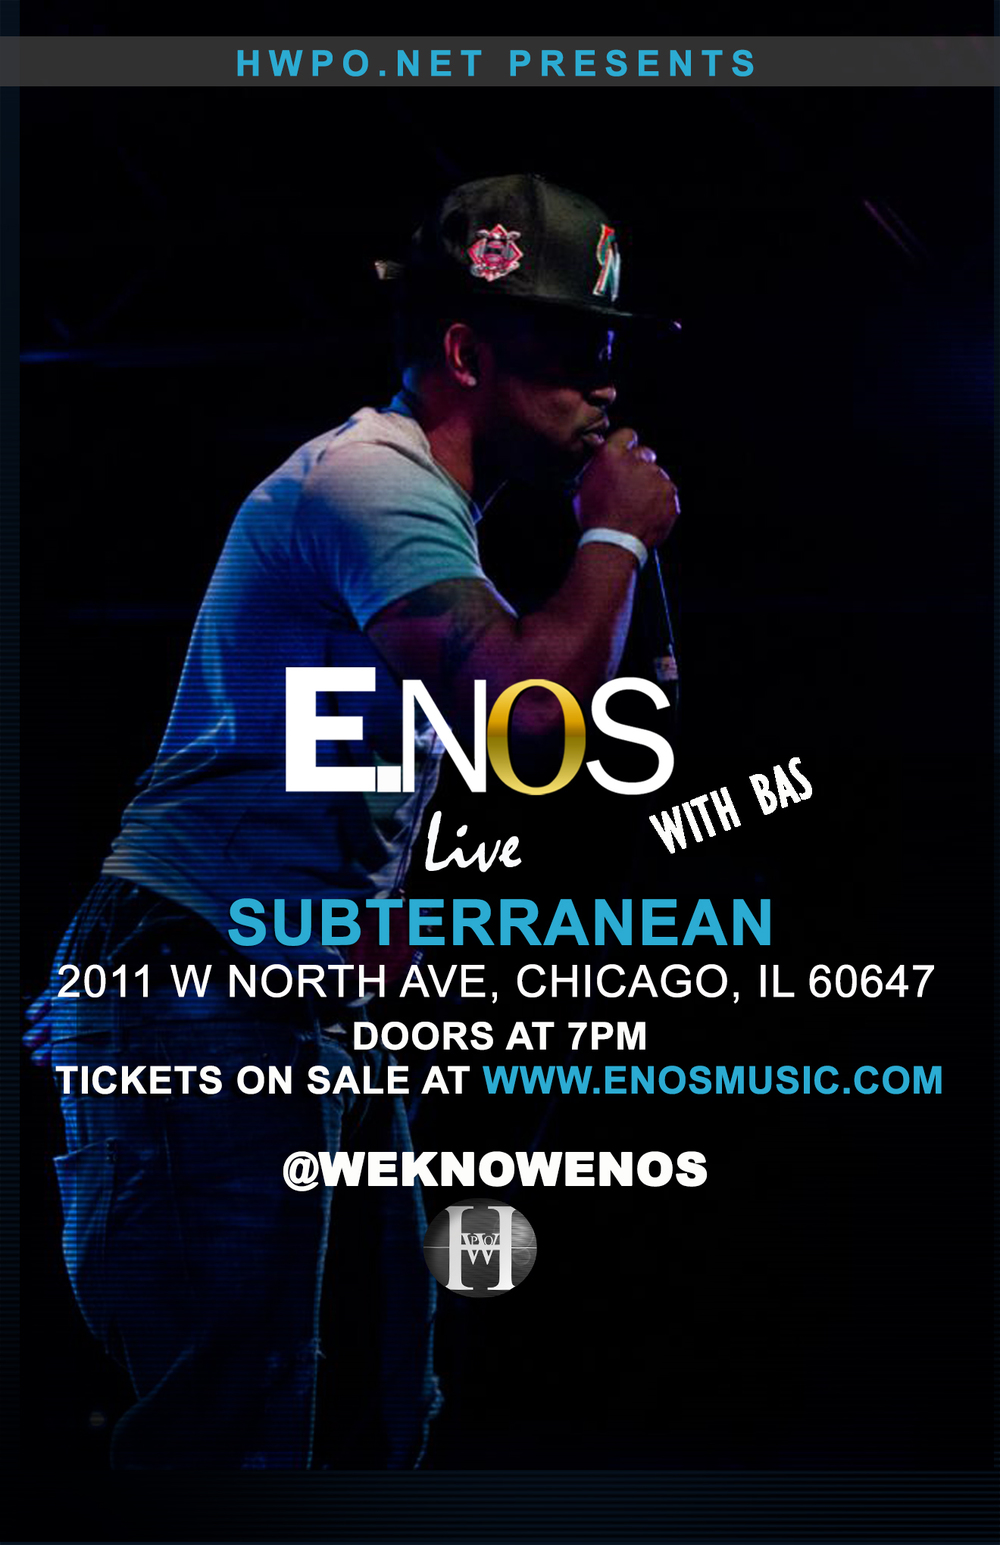 Catch E.Nos live in Chicago as he supports Bas on  his Last Winter Tour.  Location: Subterranean - 2011 W North Ave, Chicago, IL 60647  Doors open 7pm   Tickets